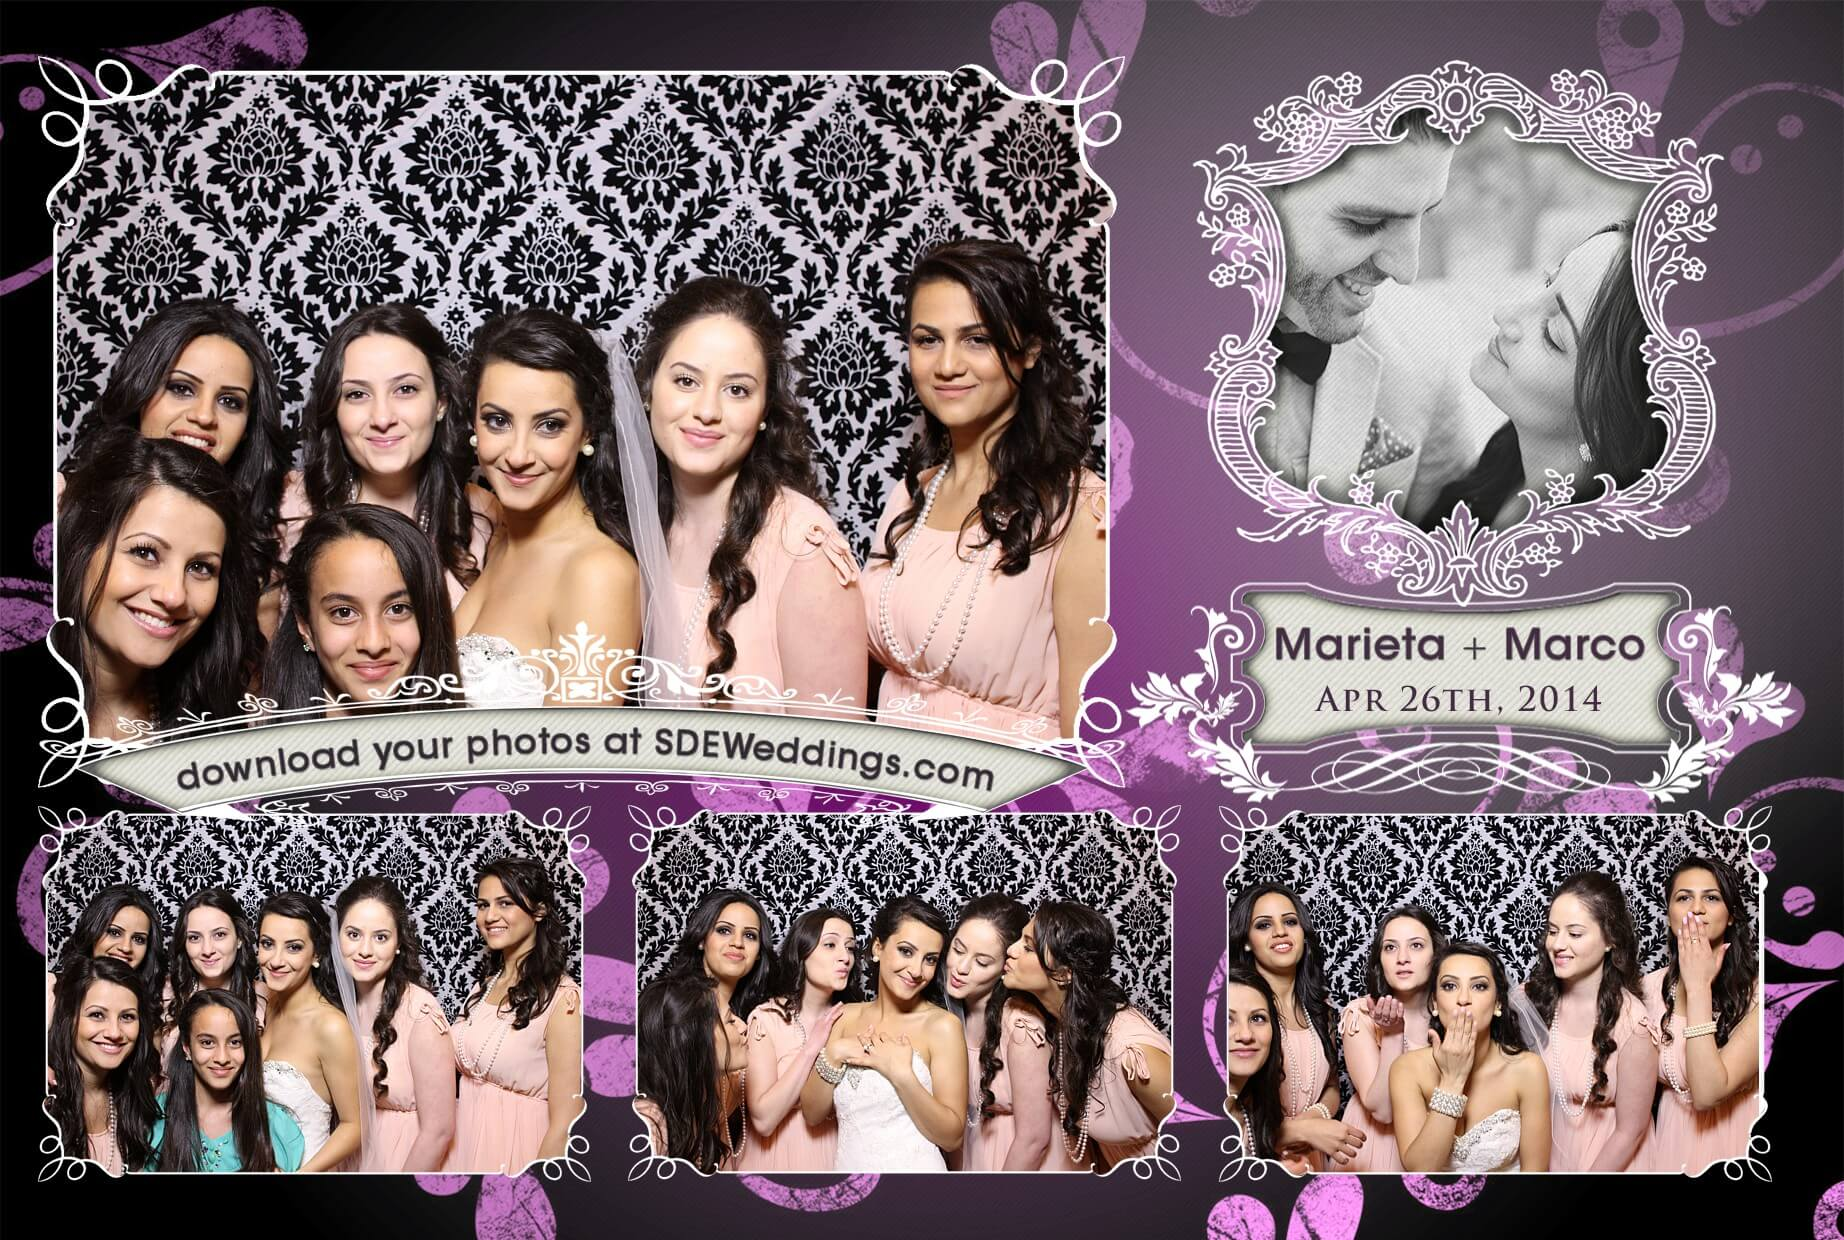 toronto photo booth rental 1 plus 3 design 2